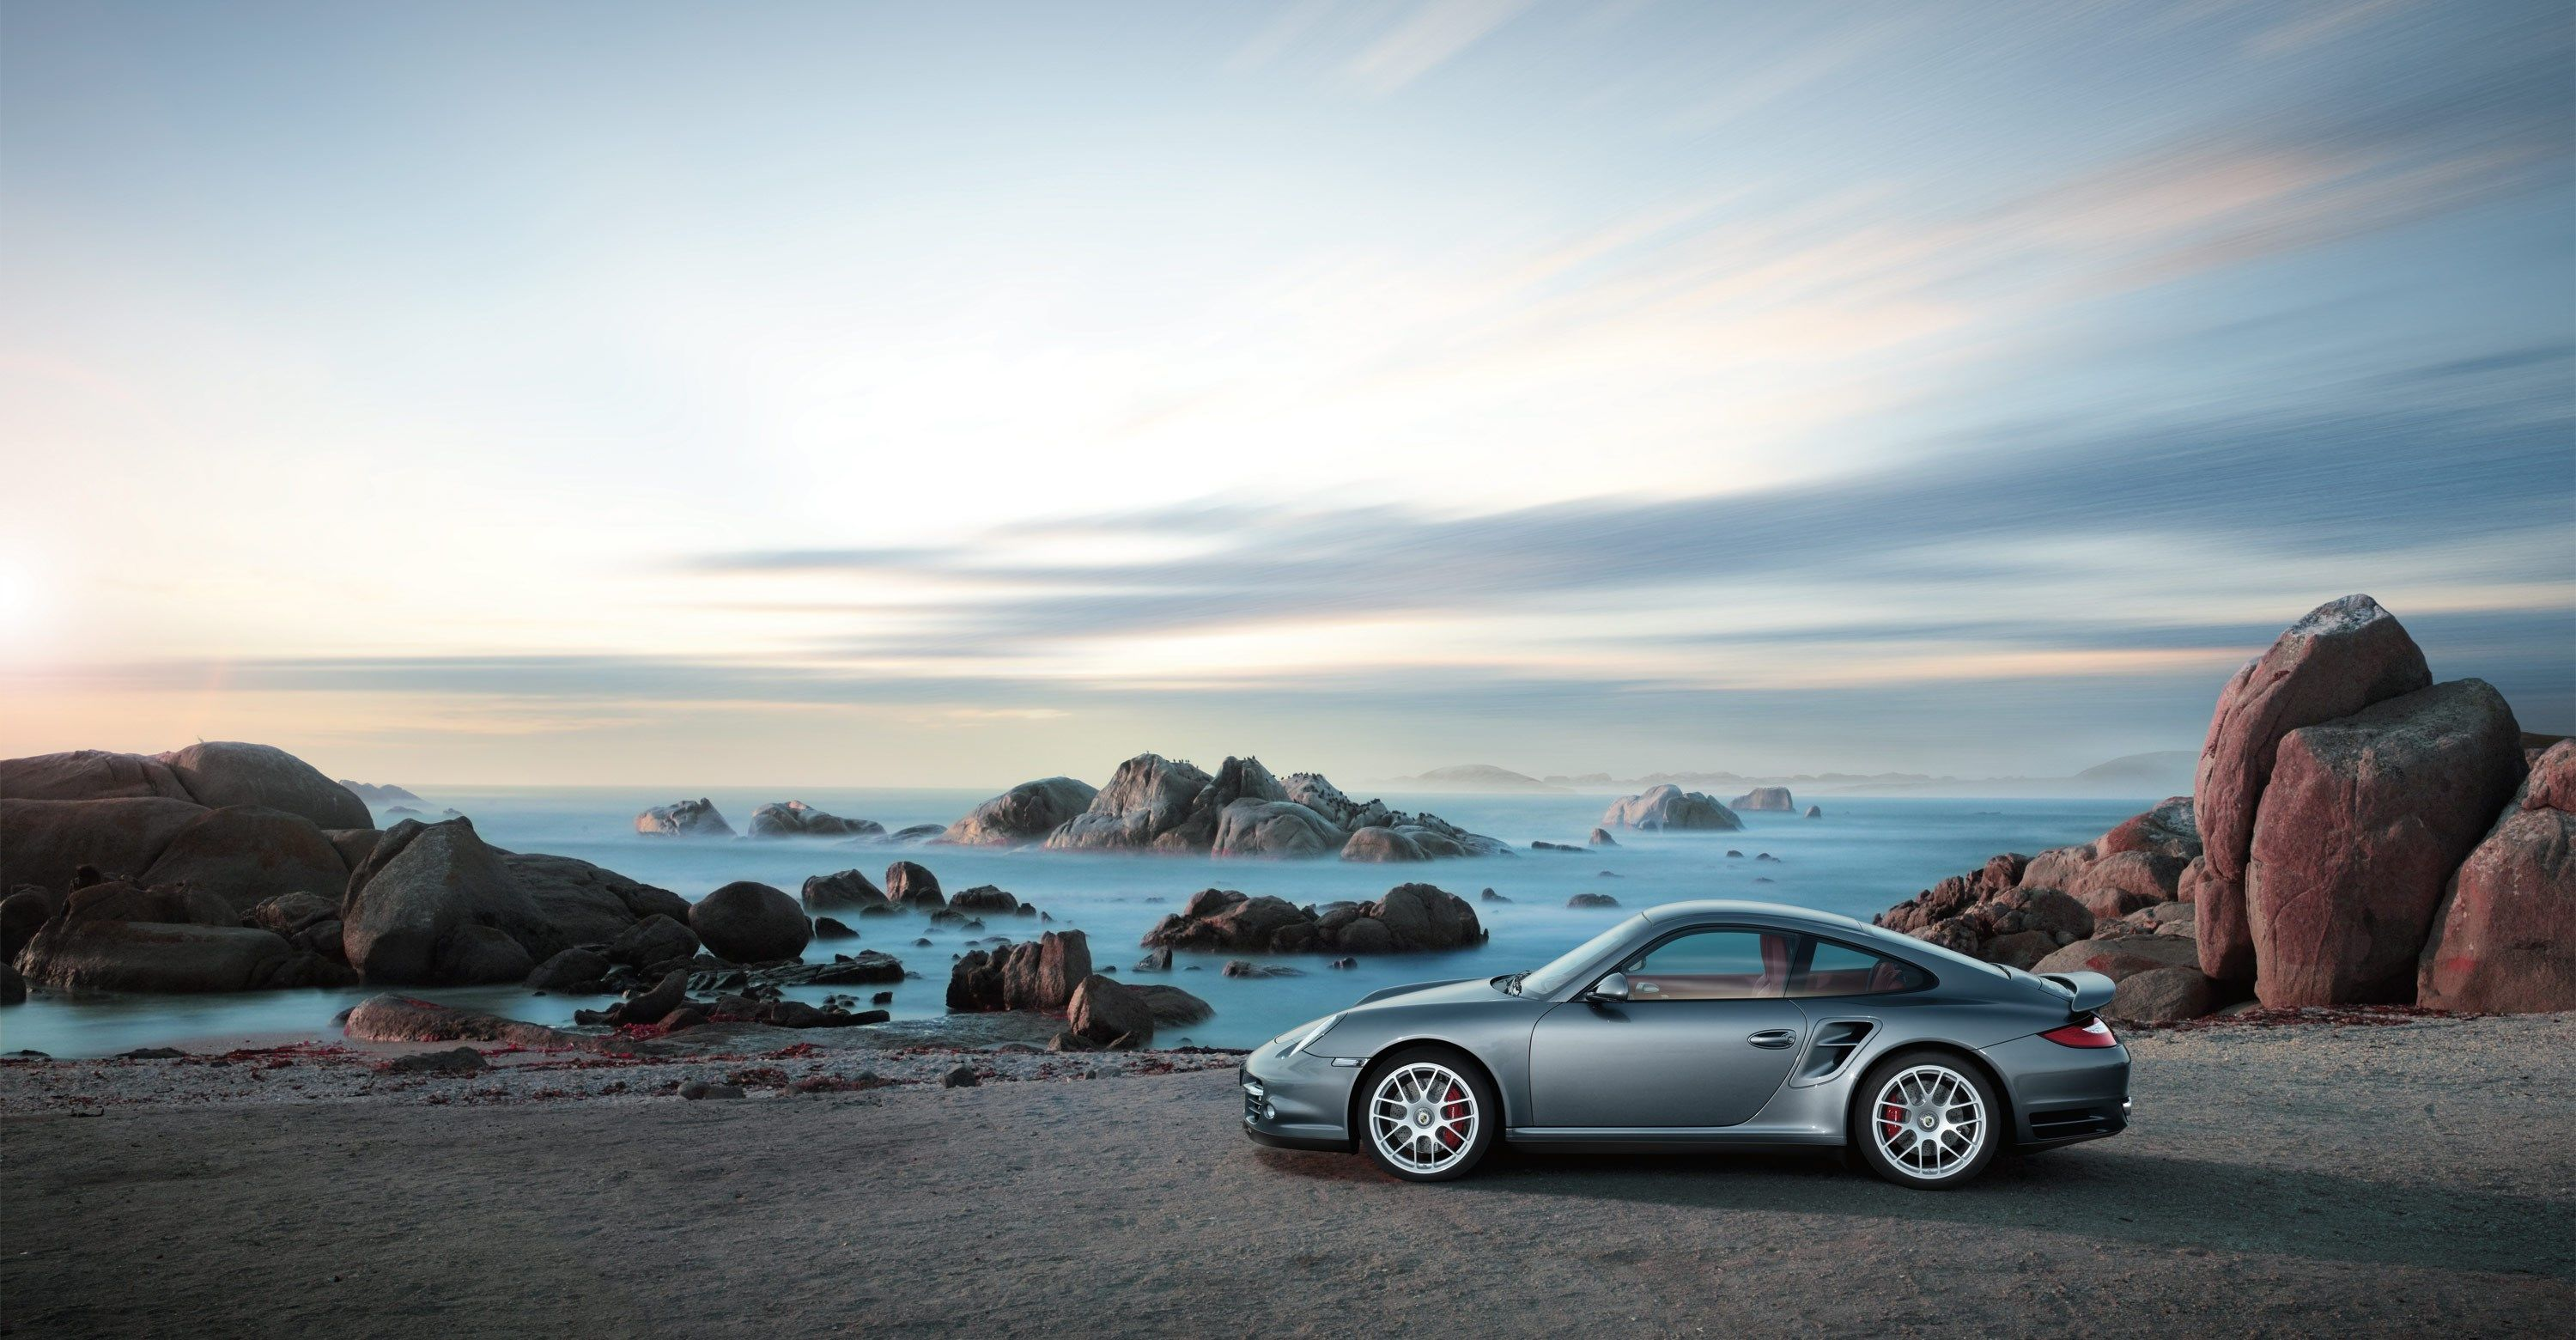 Porsche Wallpaper Free For Desktop 3000x1560 615 Kb Porsche Carrera Porsche 911 Porsche